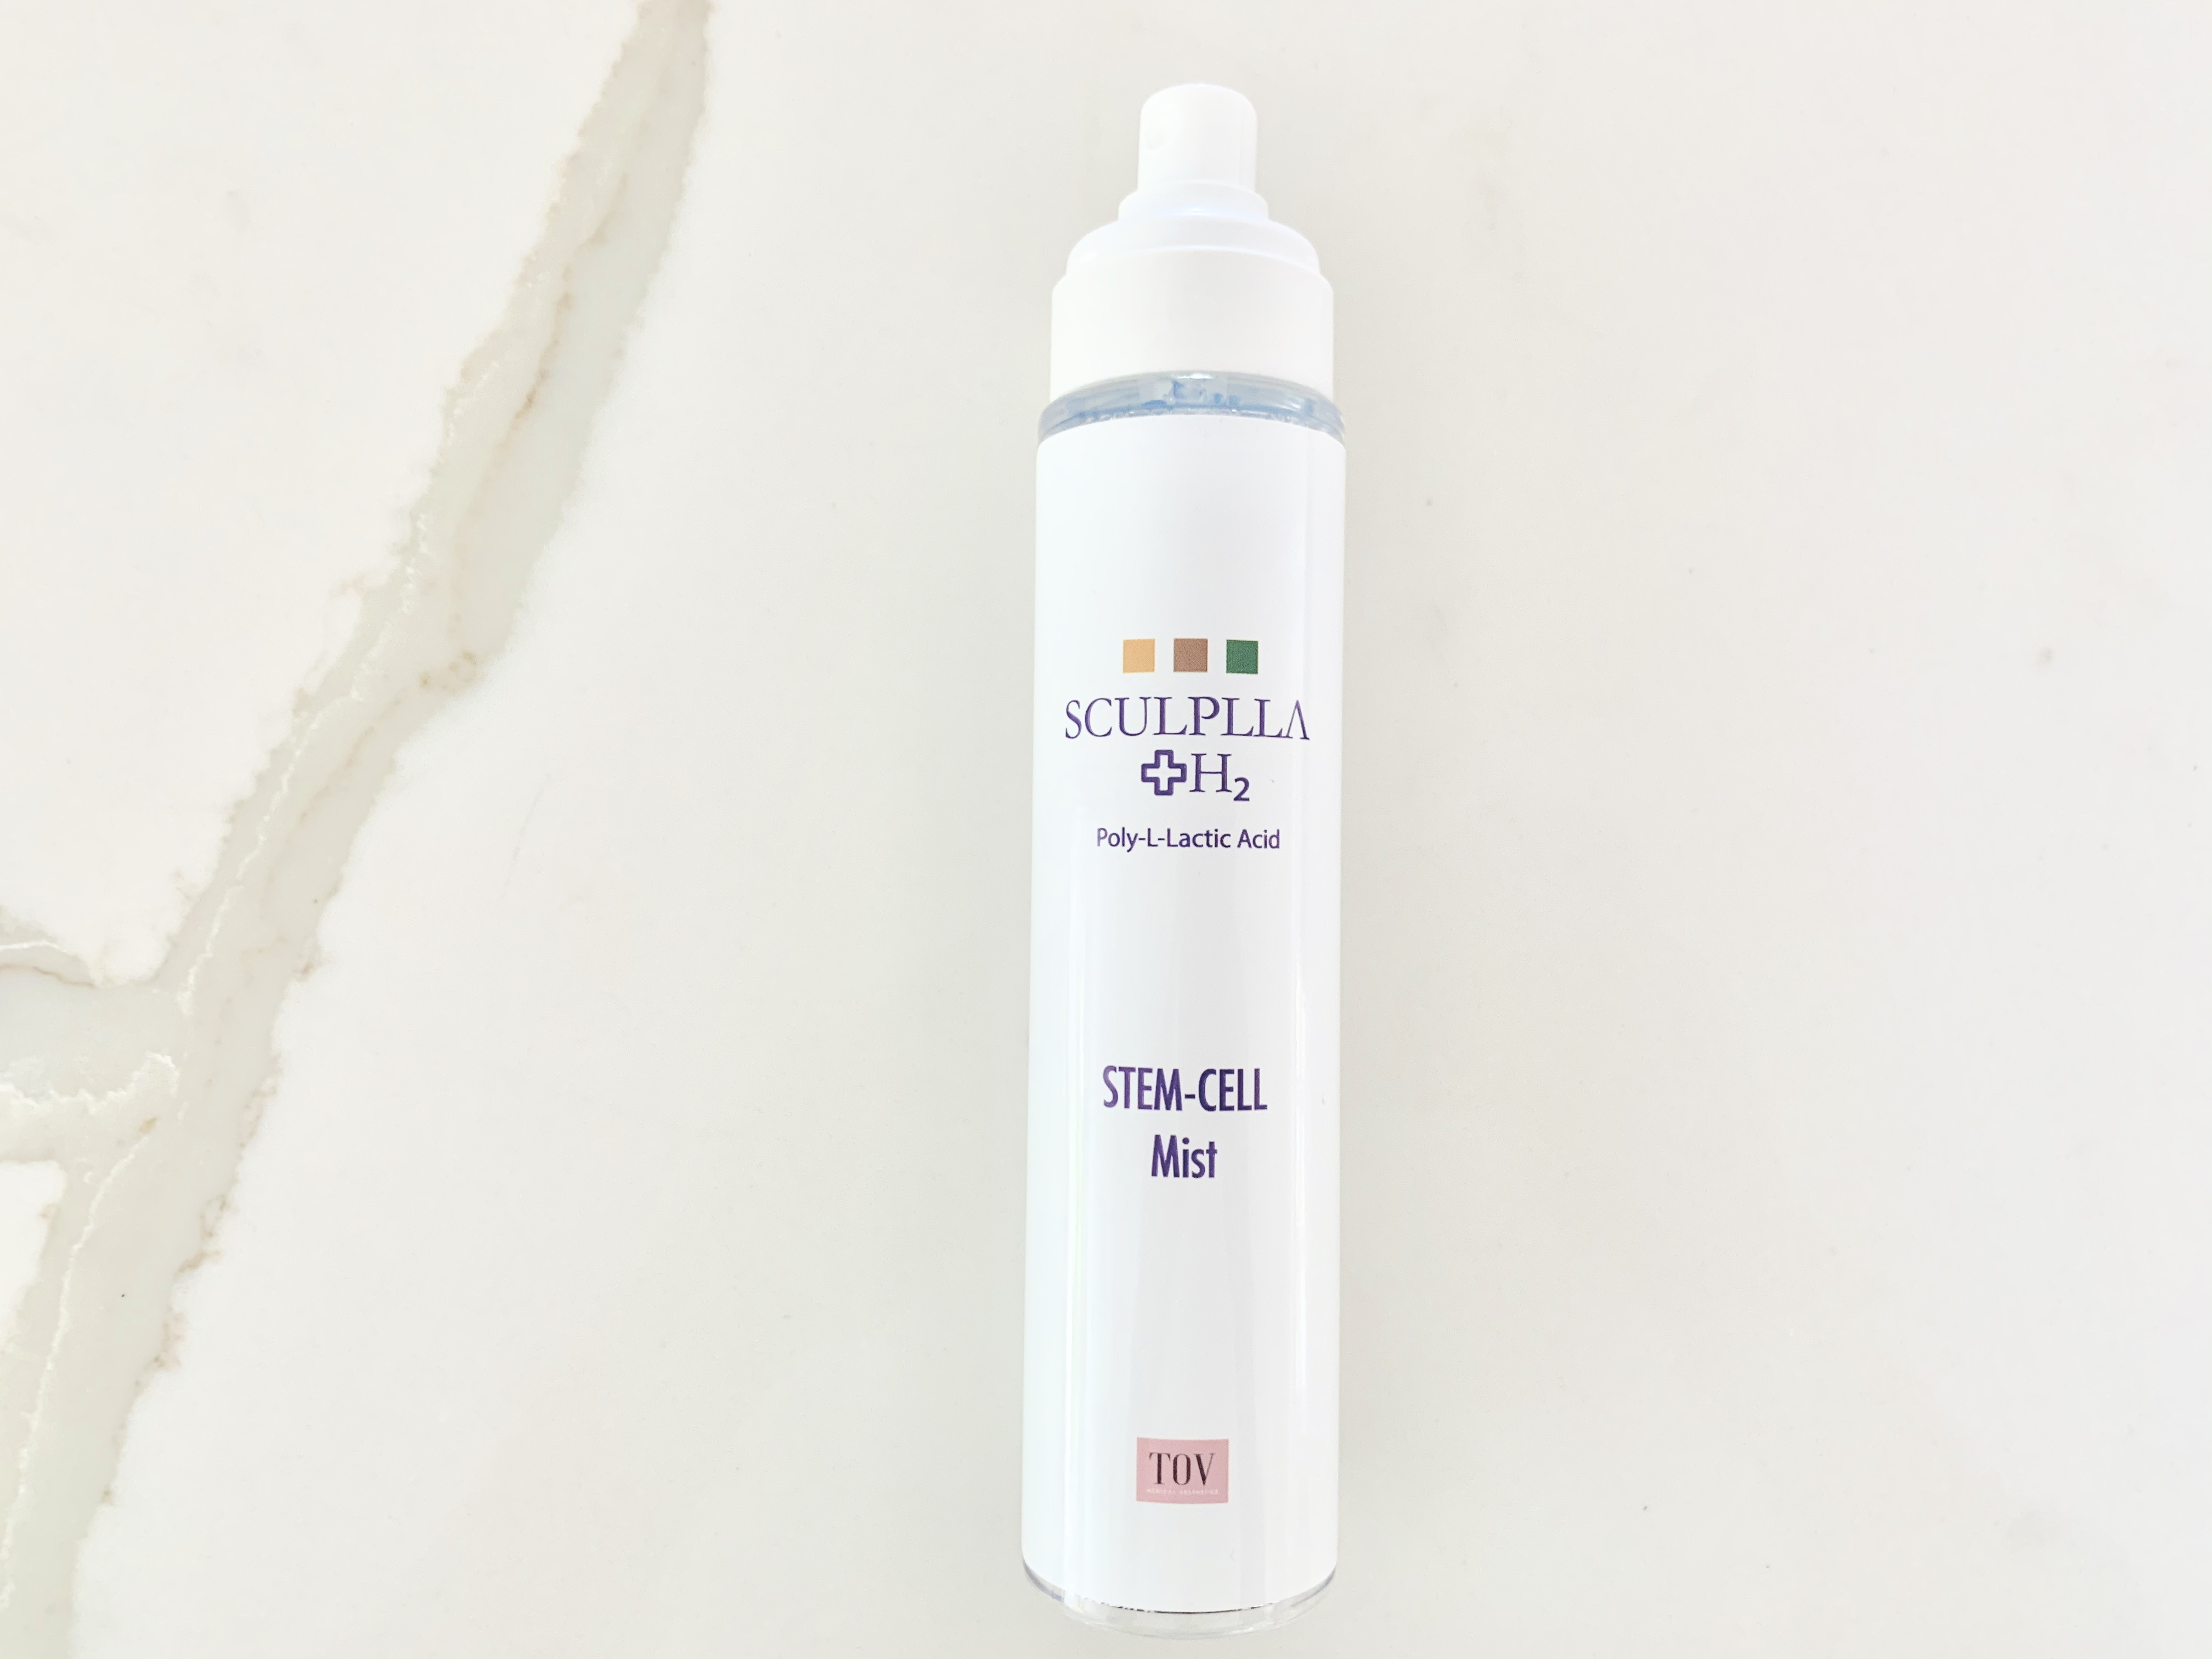 Sculplla H2 Stem-Cell Mist